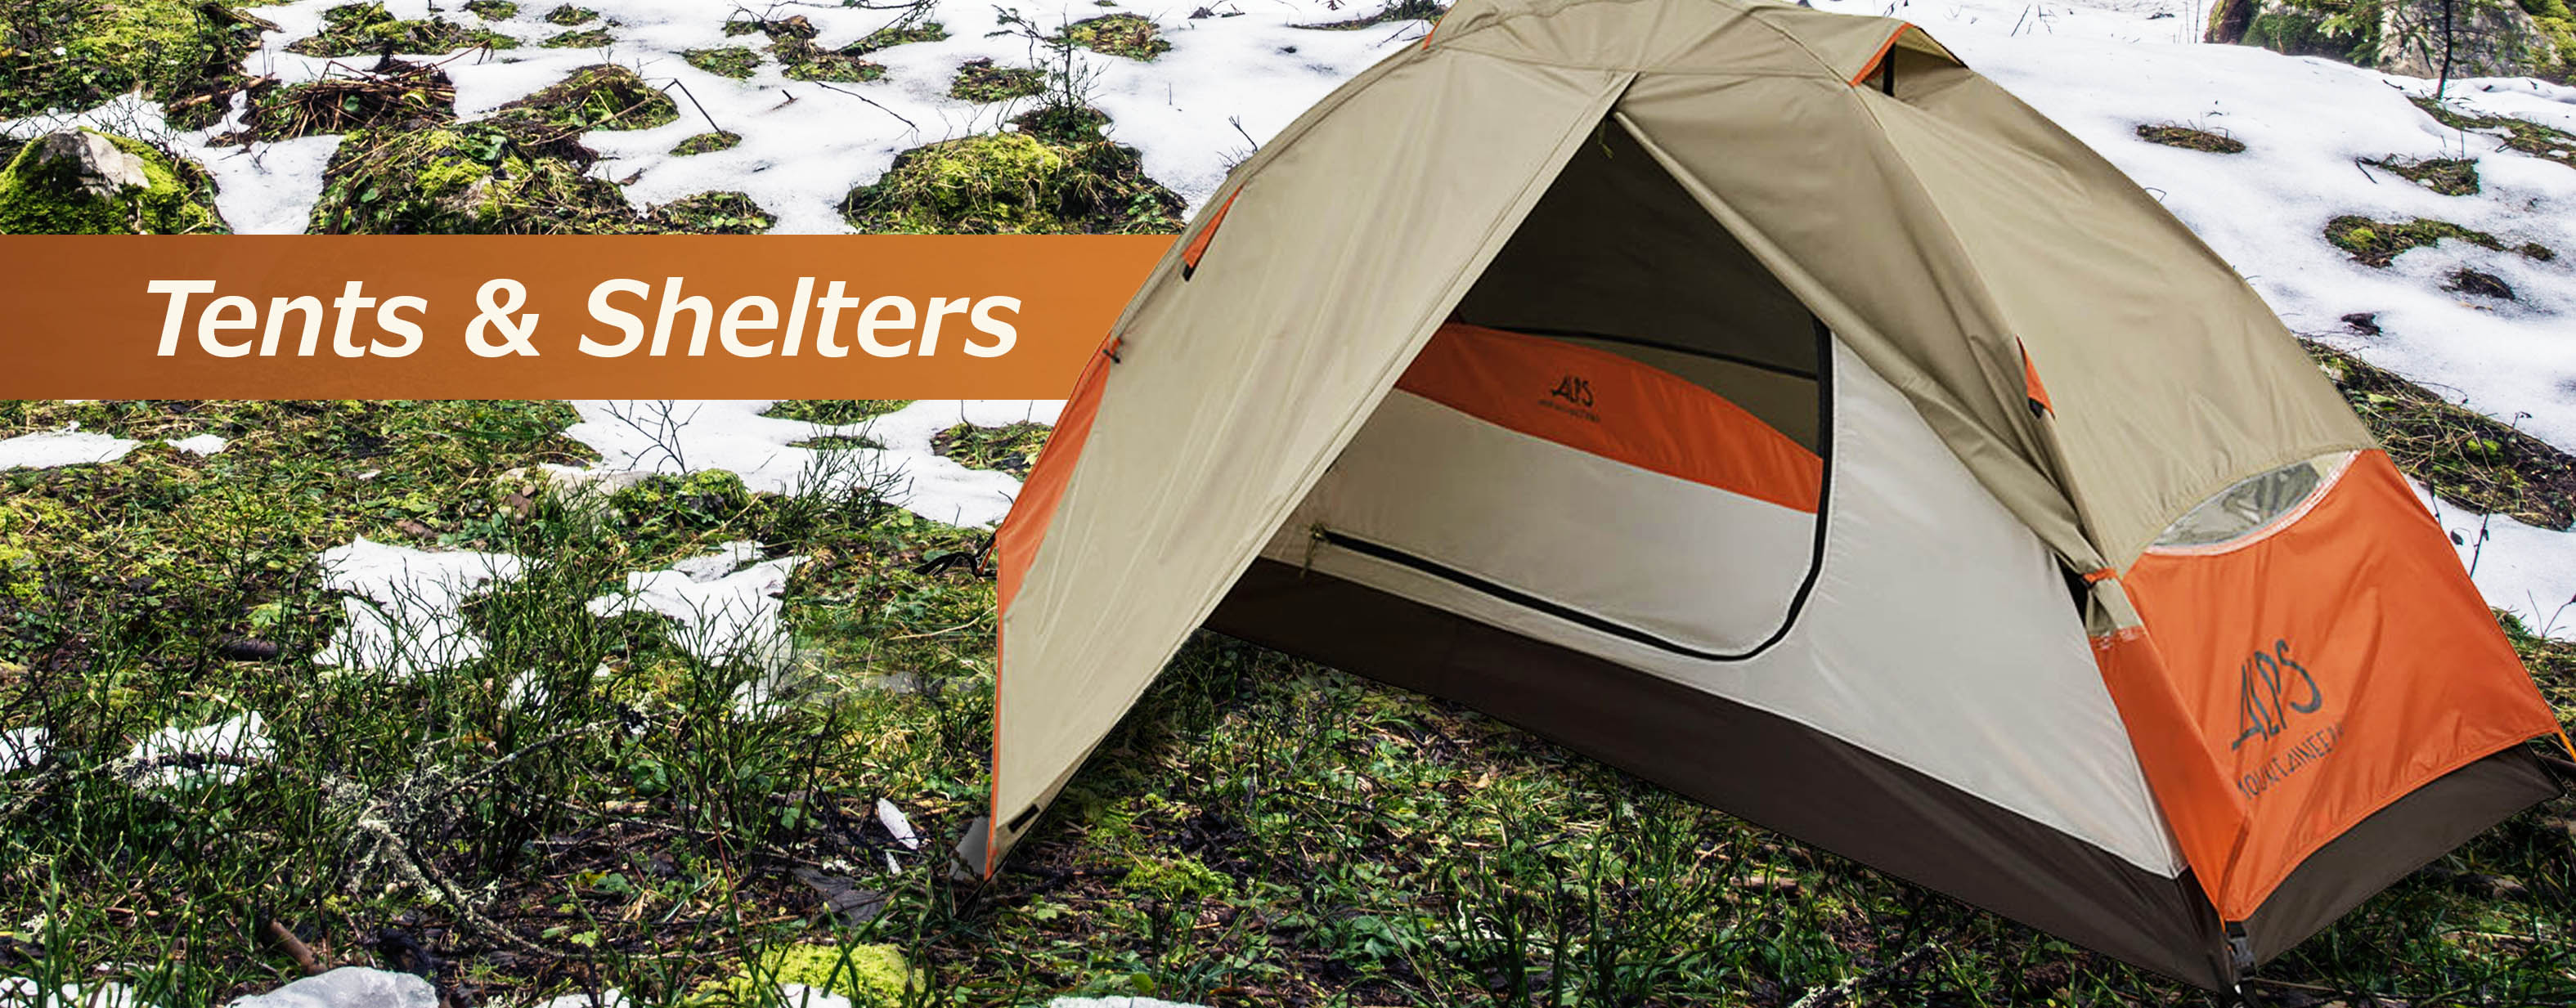 tents-and-shelter-banner-category.jpg